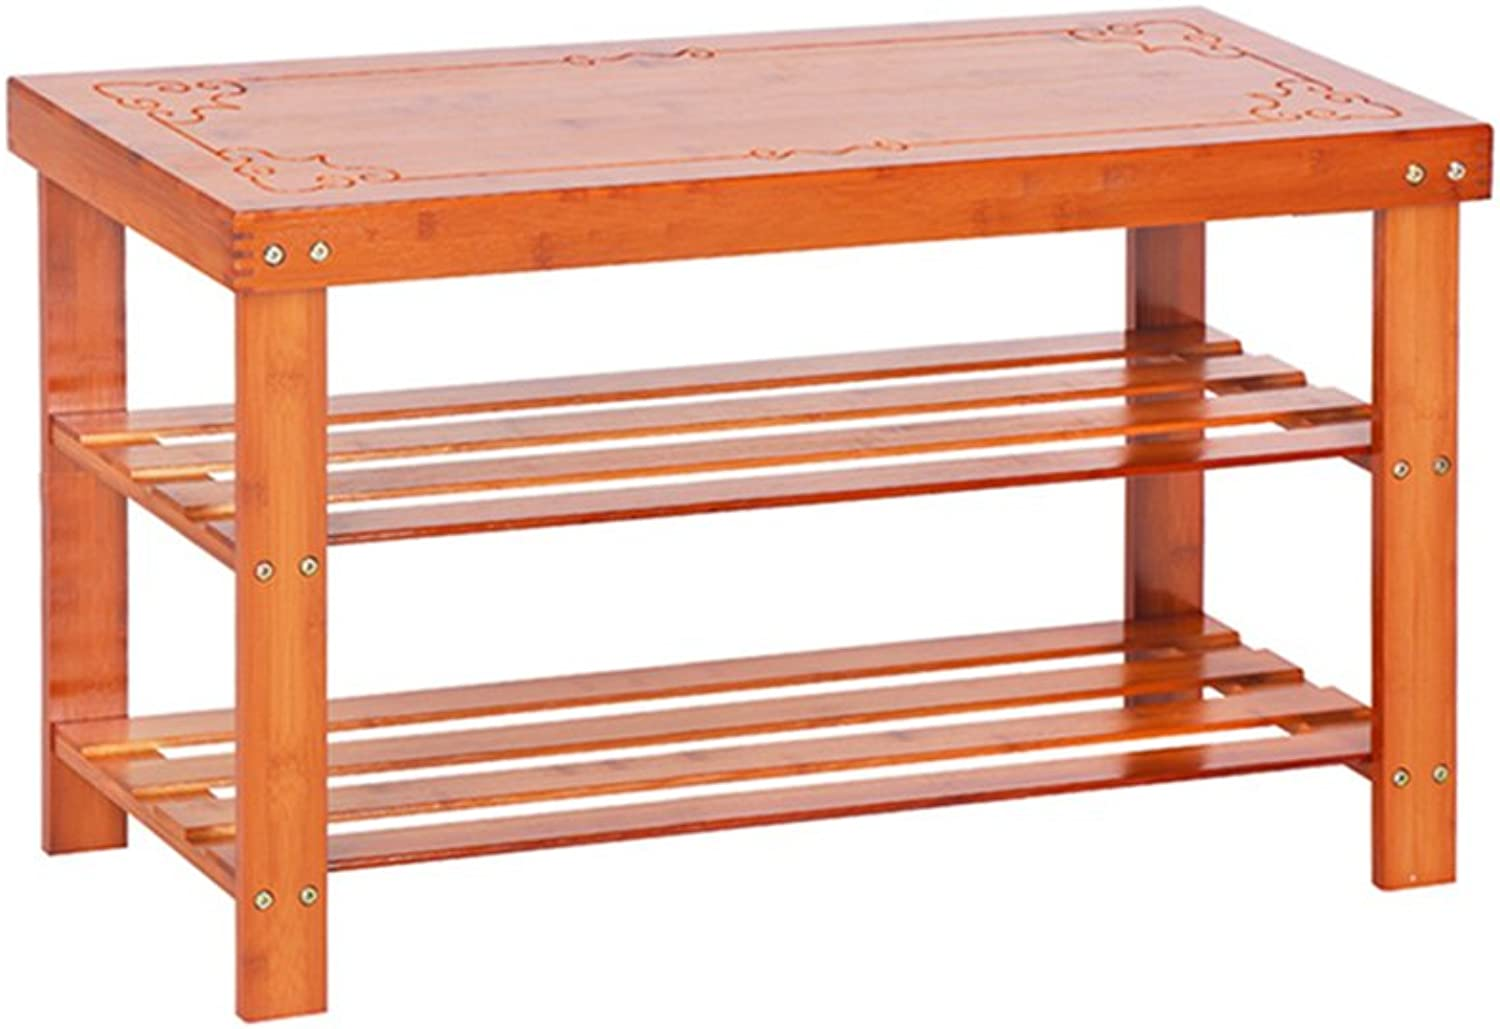 LXJYMXshoes Rack, Multi-Purpose shoes Rack shoes Frame Multi-Layer Simple Household Solid Wood shoes Cabinet shoes Bench Bamboo Storage Rack Assembly Modern Simple dust shoes Rack (Size   80  28  45cm)